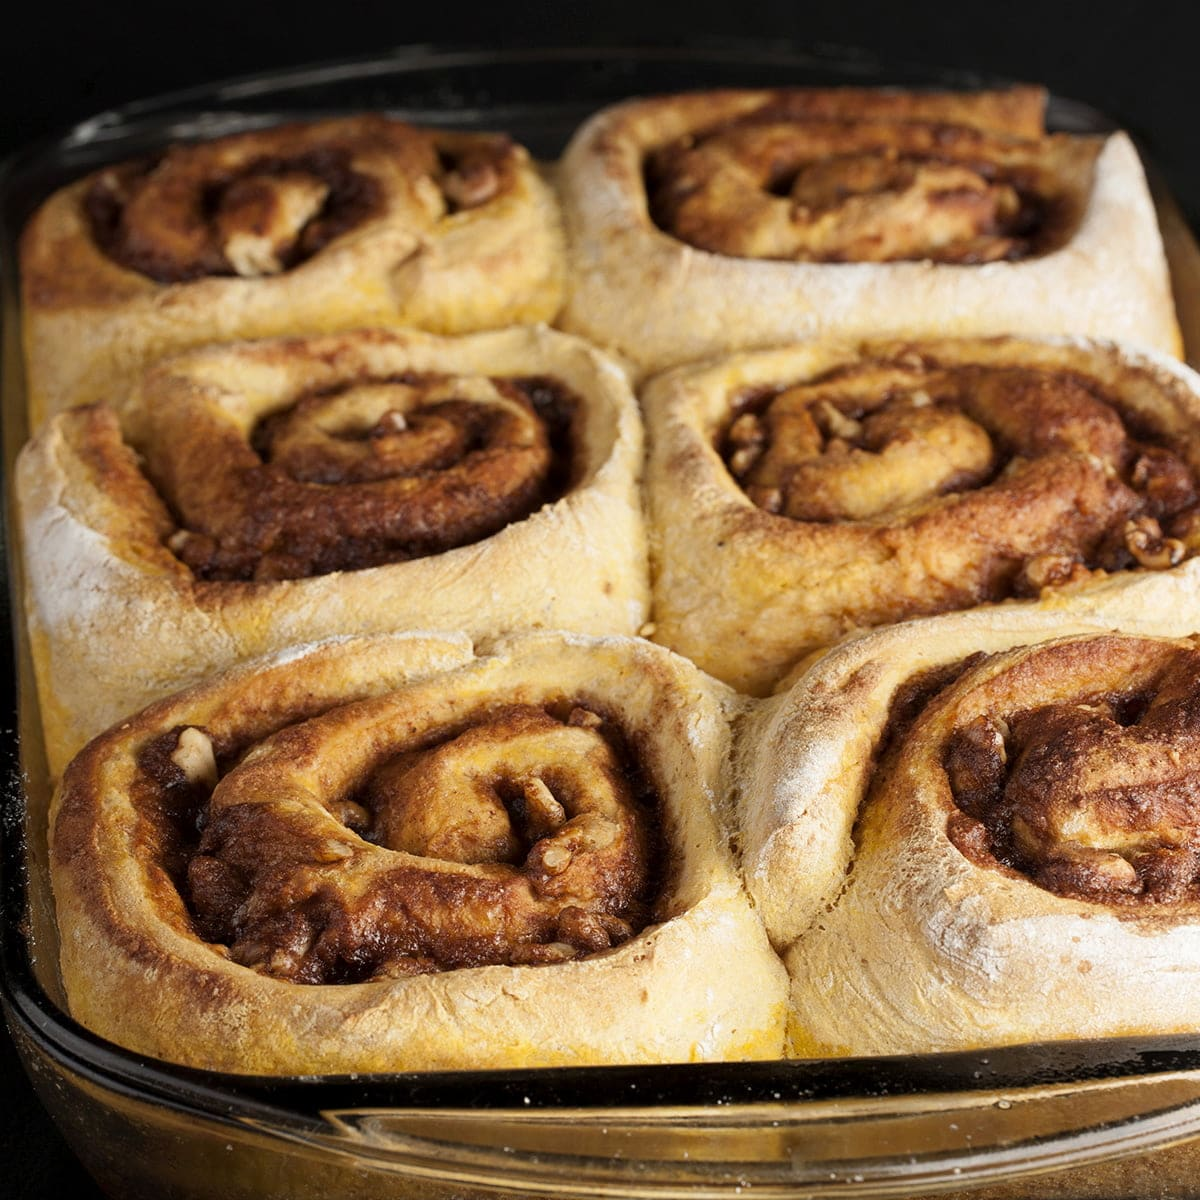 A rectangular baking pan with 6 very large Maple Spiced Pumpkin Buns in it.